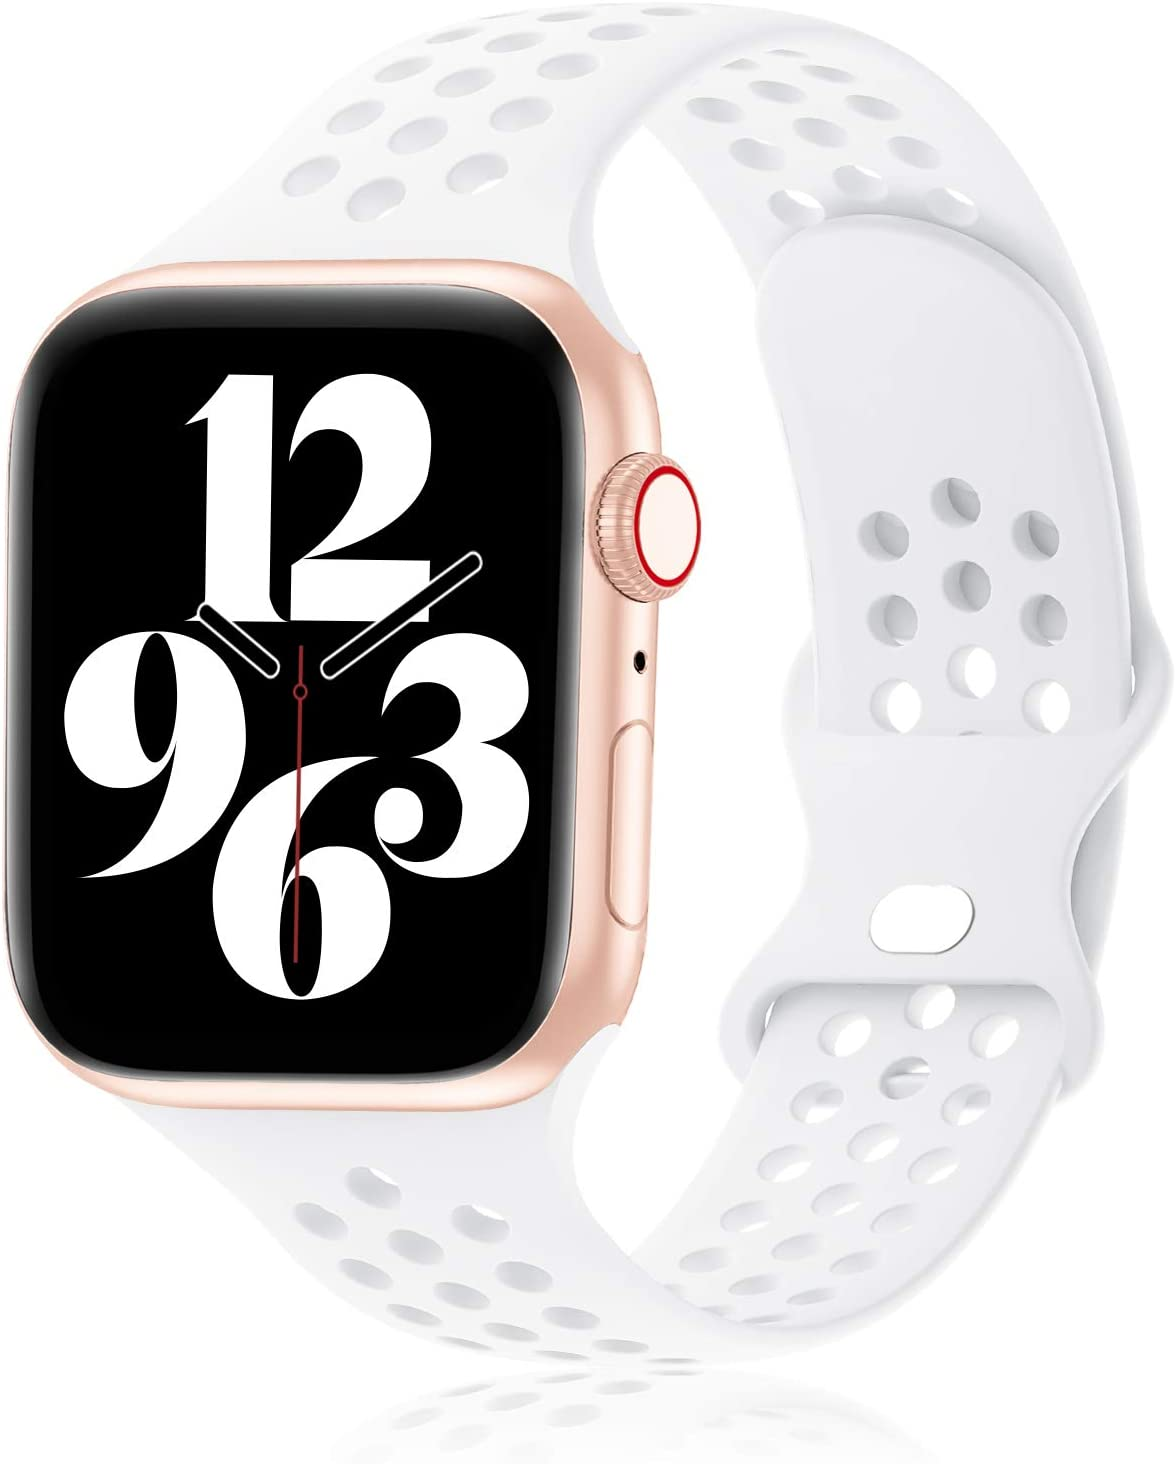 Seizehe Compatible for Apple Watch Bands 38mm 40mm 42mm 44mm Women Men, Breathable Soft Silicone Sport iWatch Bands Replacement Strap Compatible for iWatch Series 6/5/4/3/2/1/SE